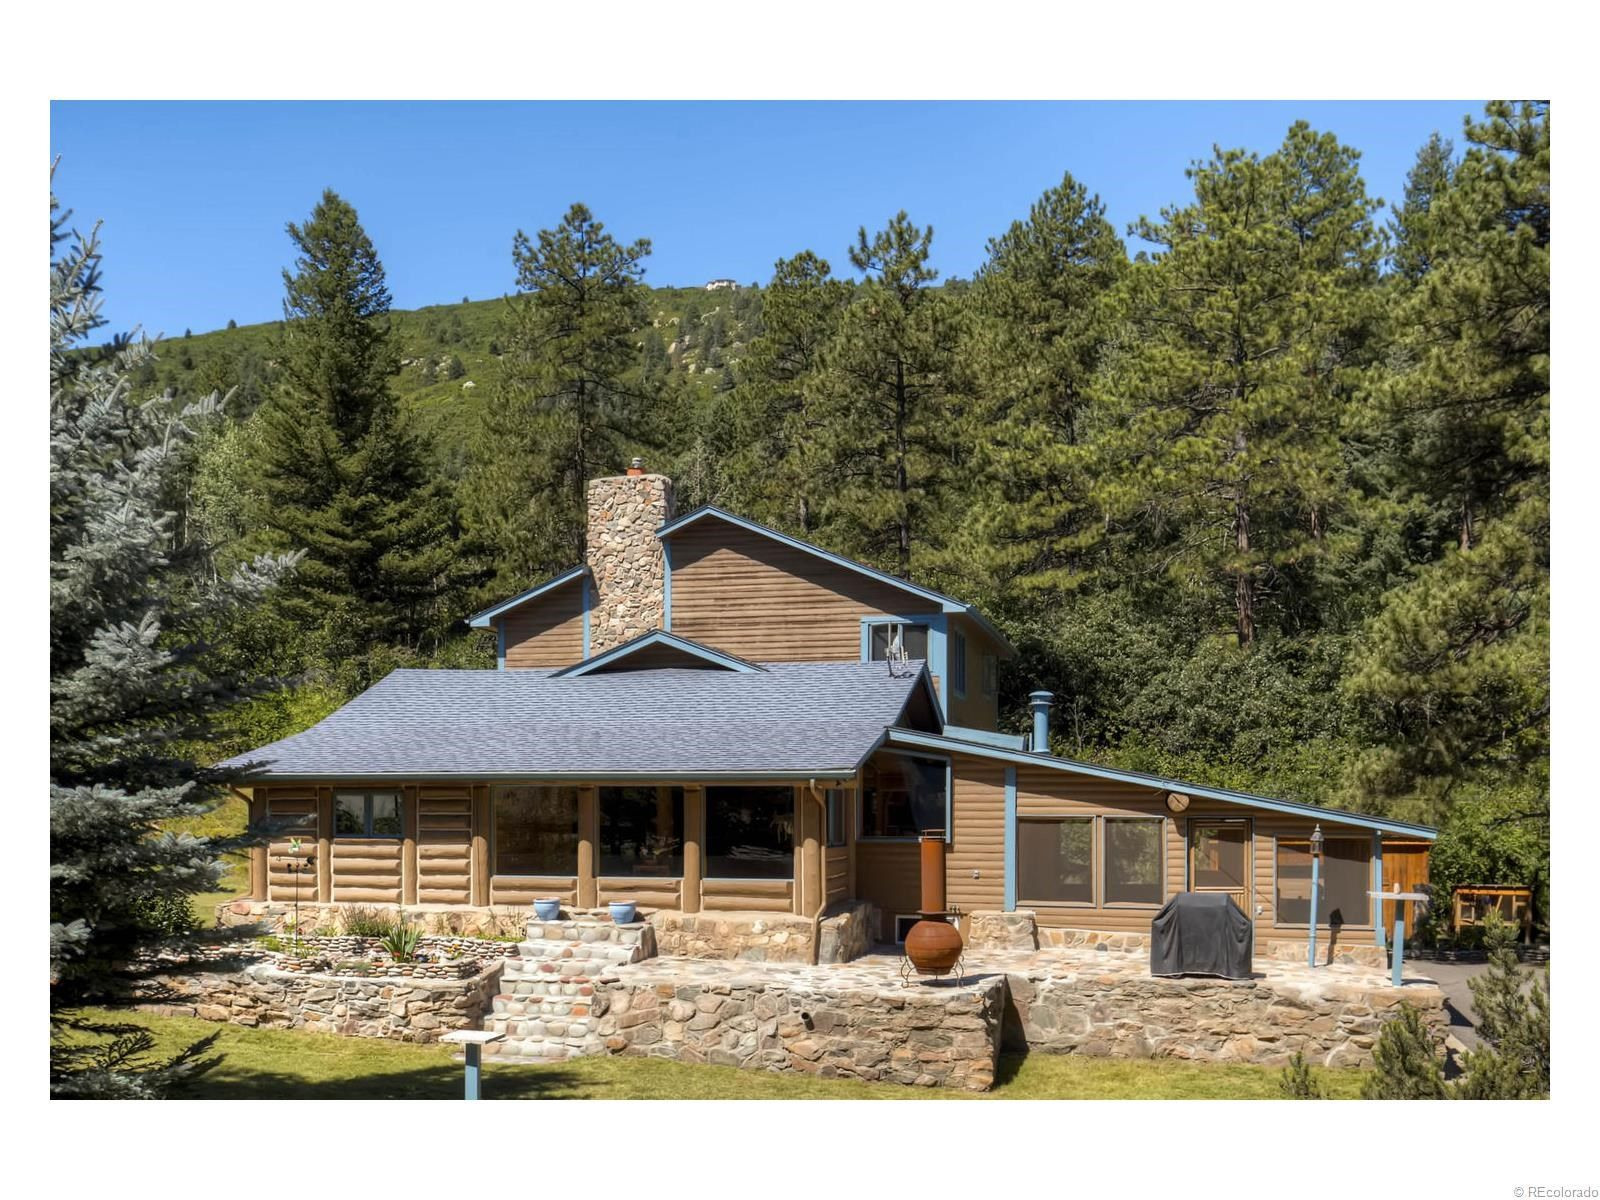 co mls dr featured roomfrontviewhouse homes htm for evergreen bell log sale conifer genesee morrison colorado properties cabins land meade